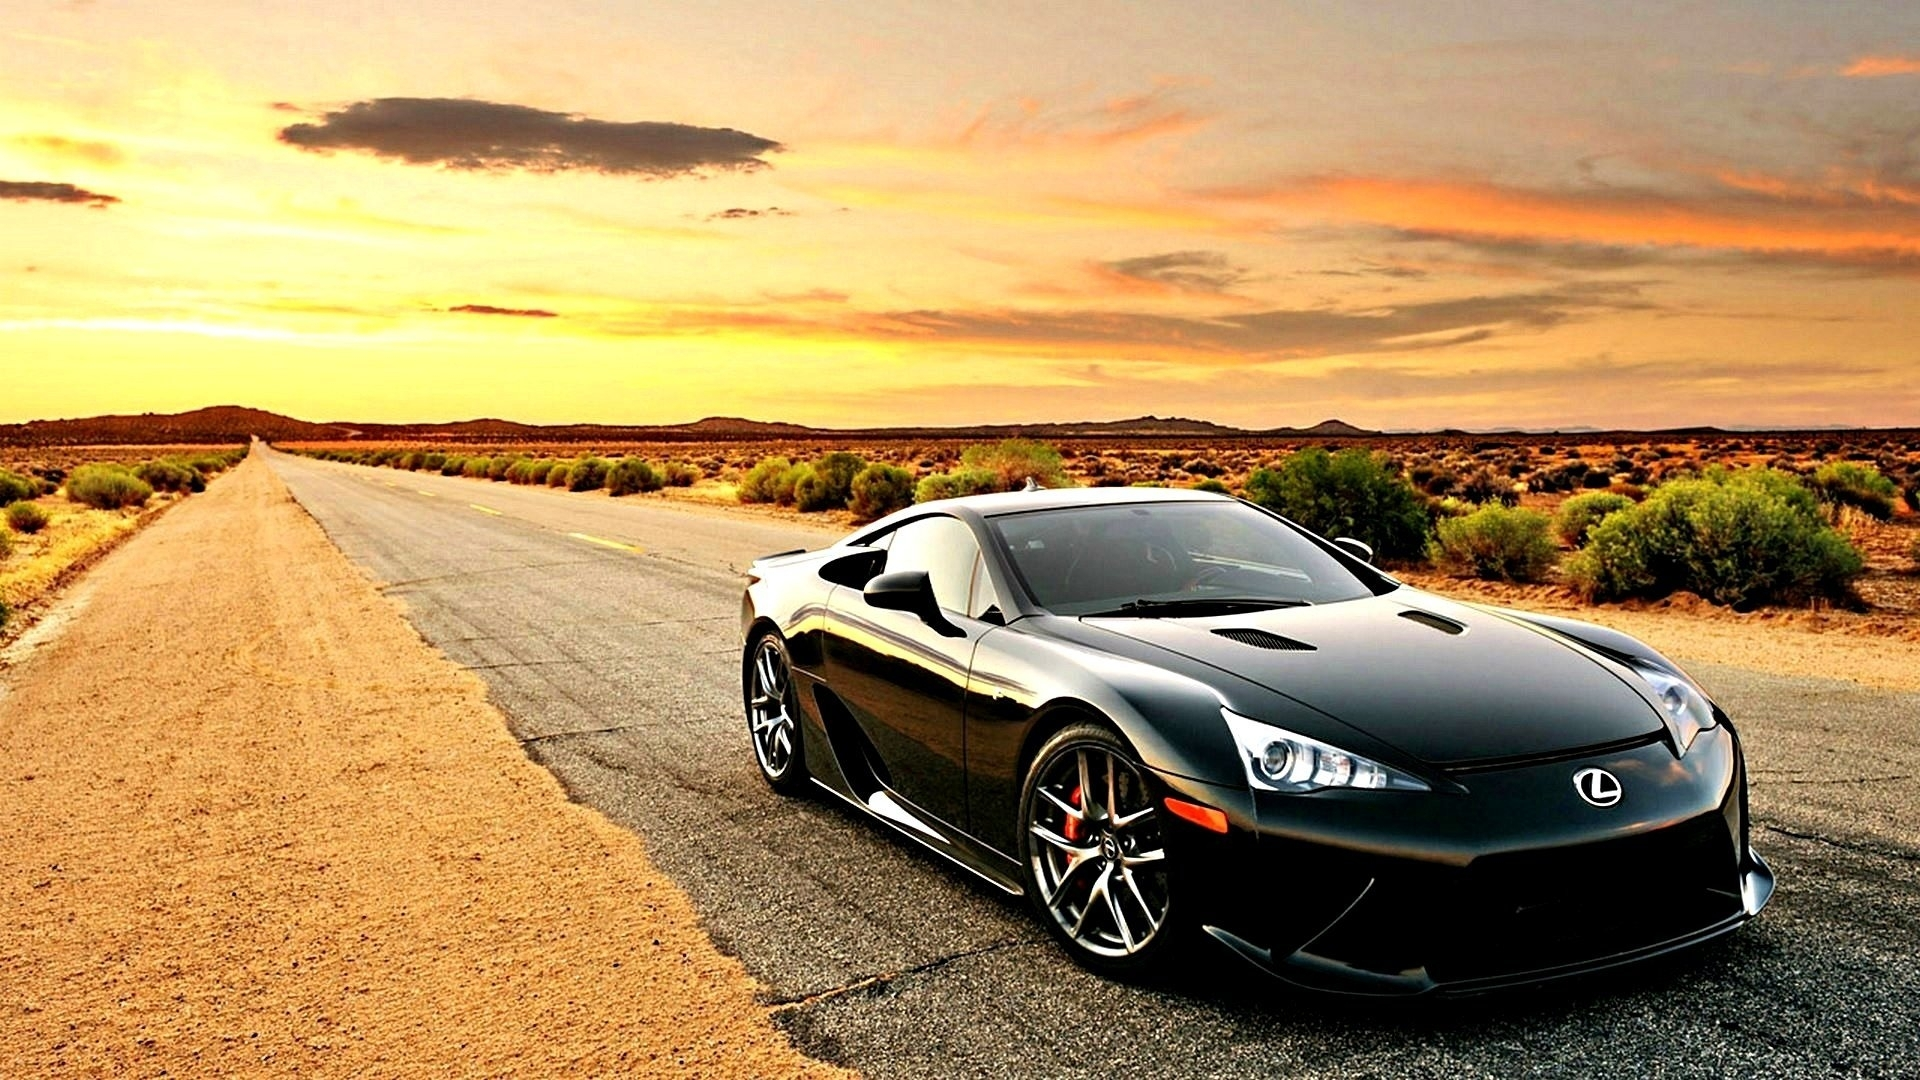 40 lexus lfa hd wallpapers | background images - wallpaper abyss